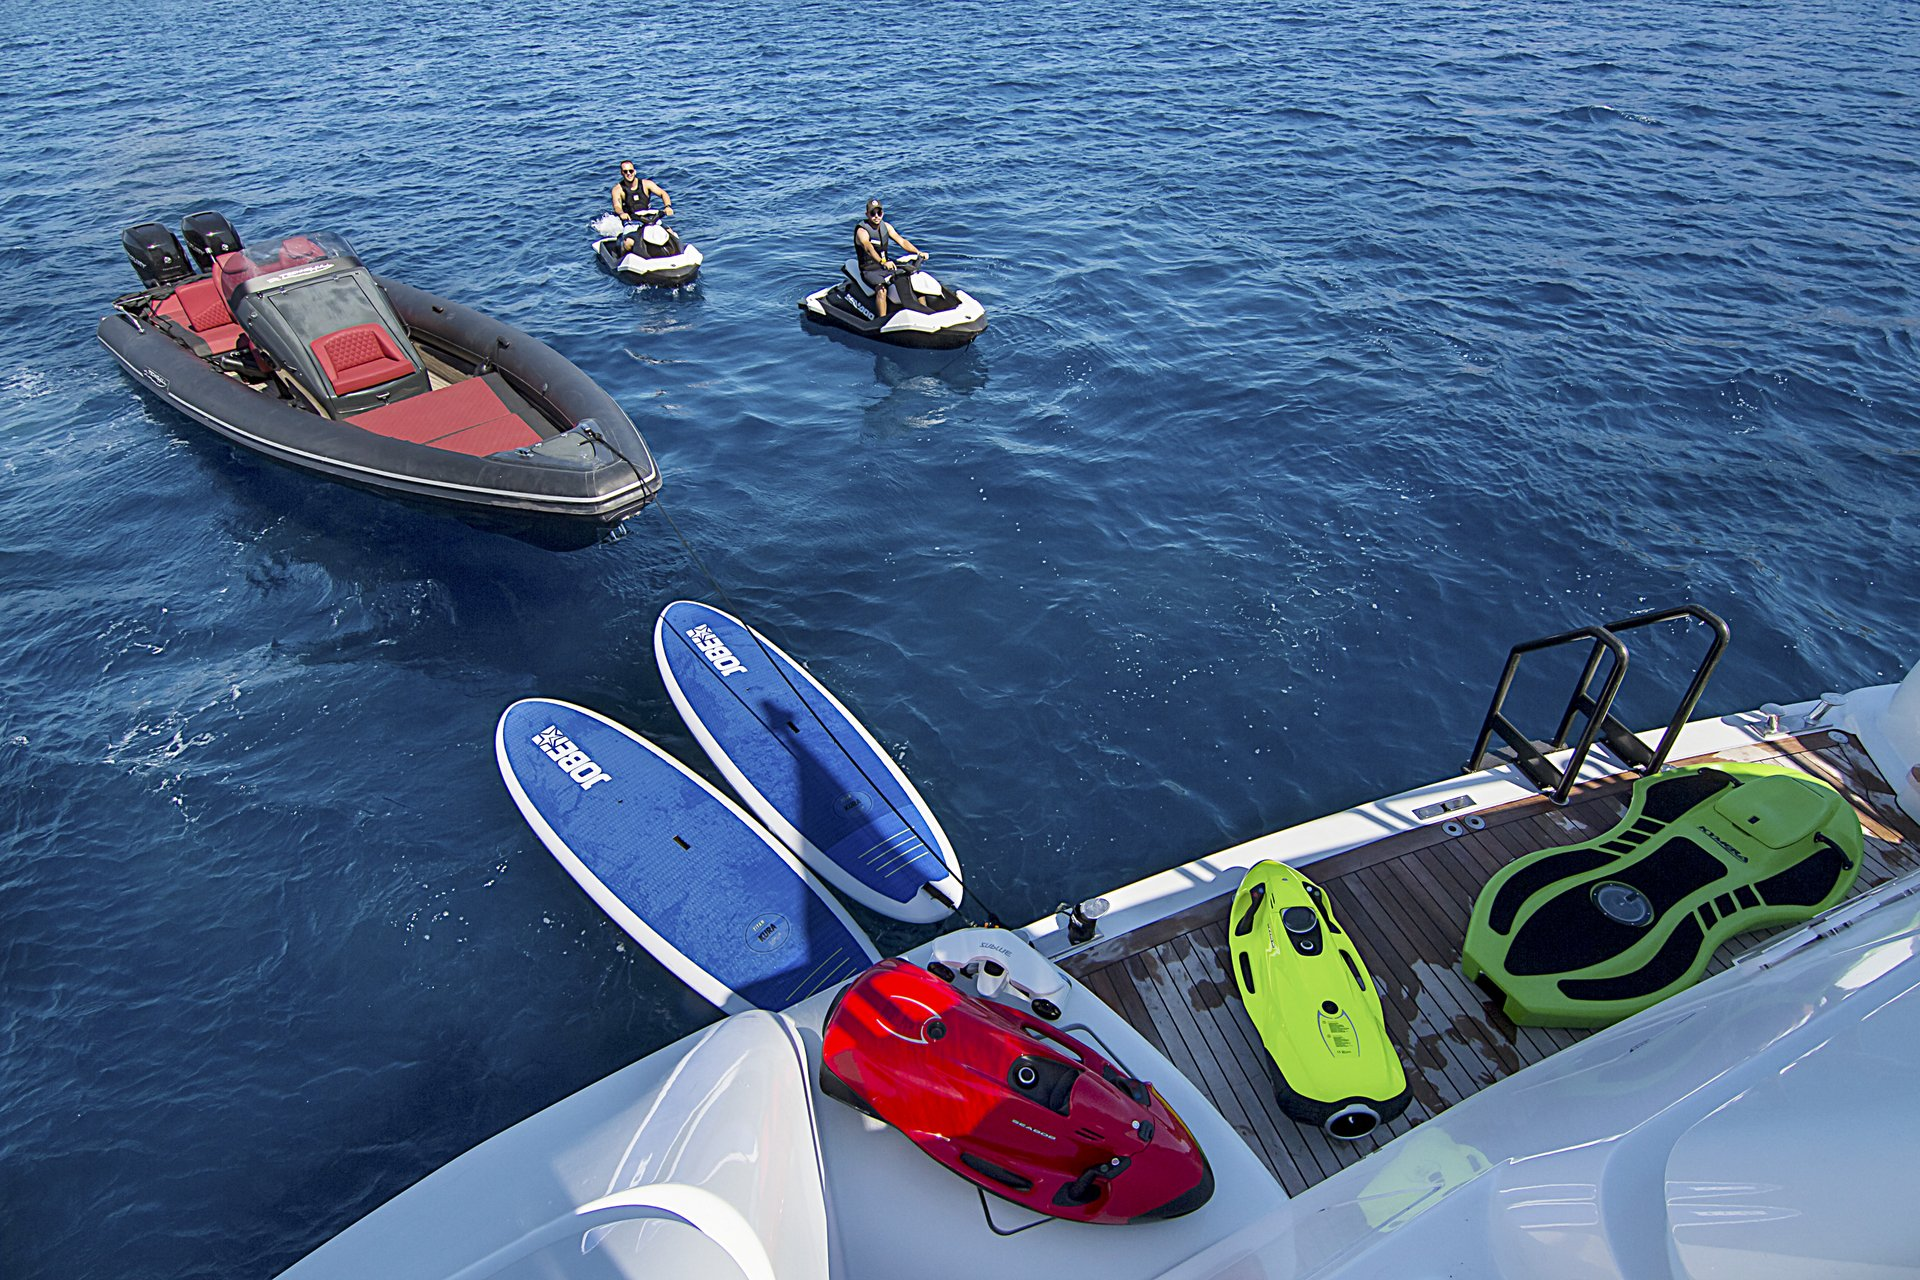 m/y invader yacht for charter watertoys